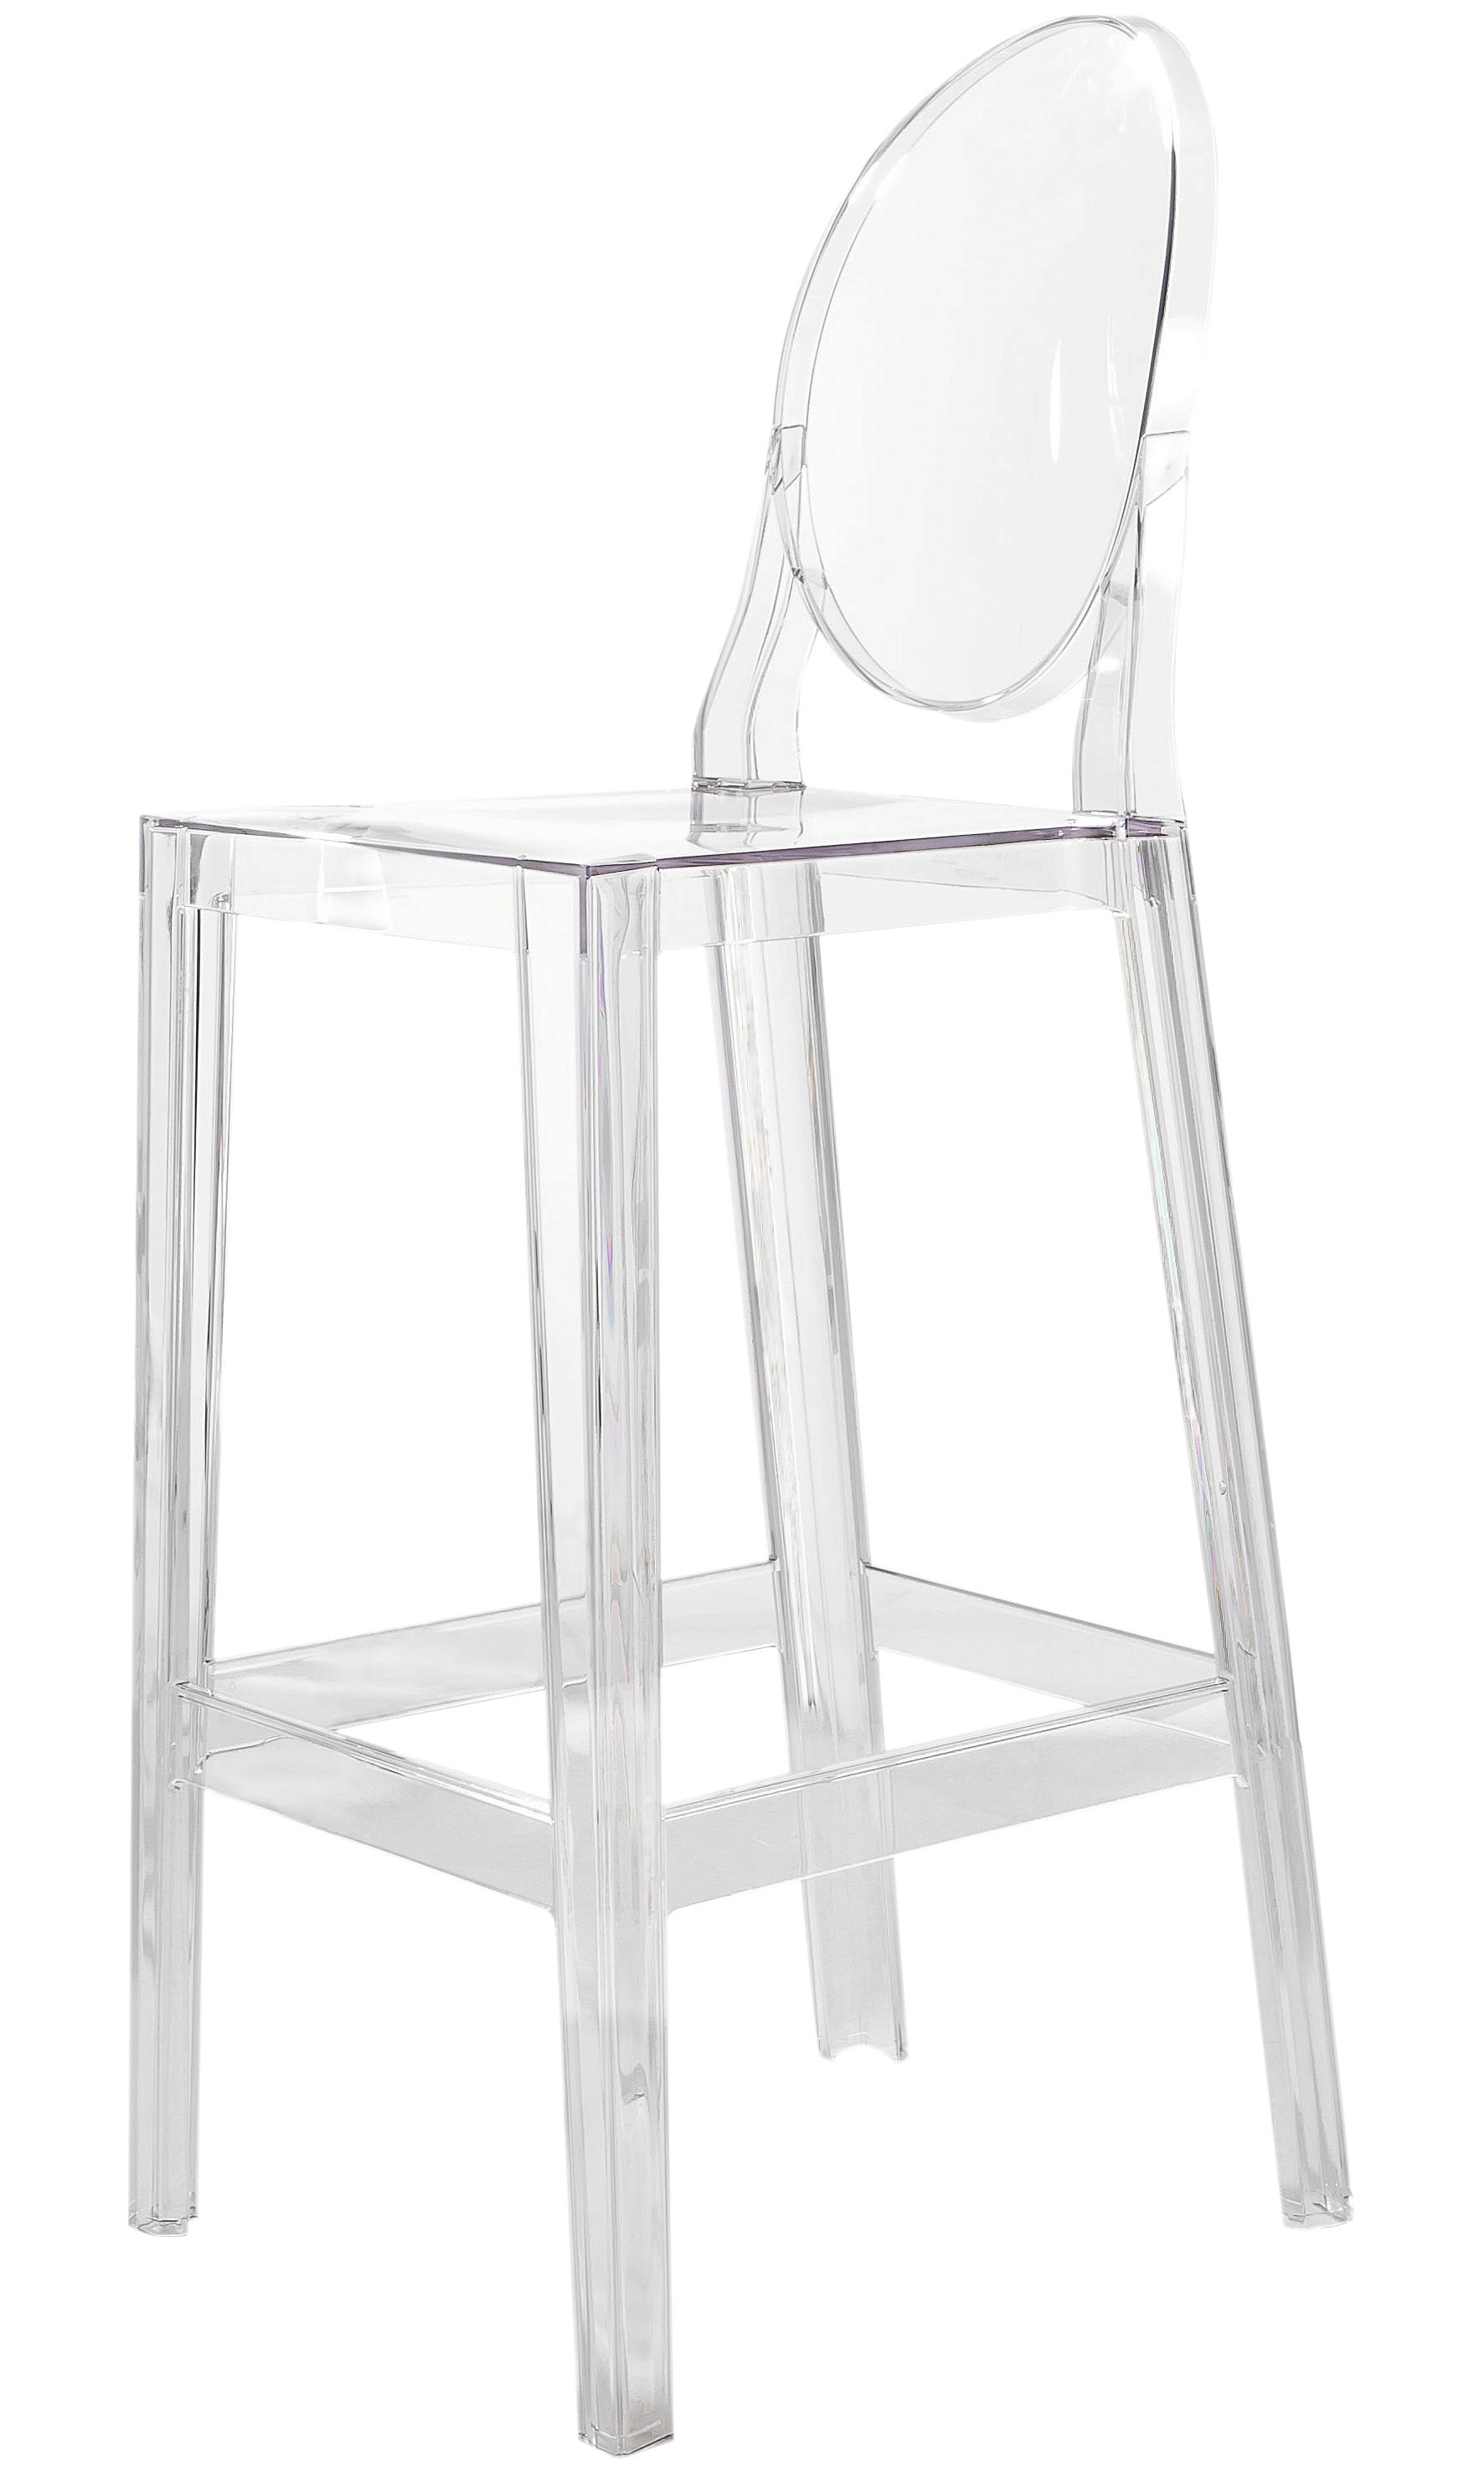 chaise de bar one more h 75cm plastique cristal kartell. Black Bedroom Furniture Sets. Home Design Ideas